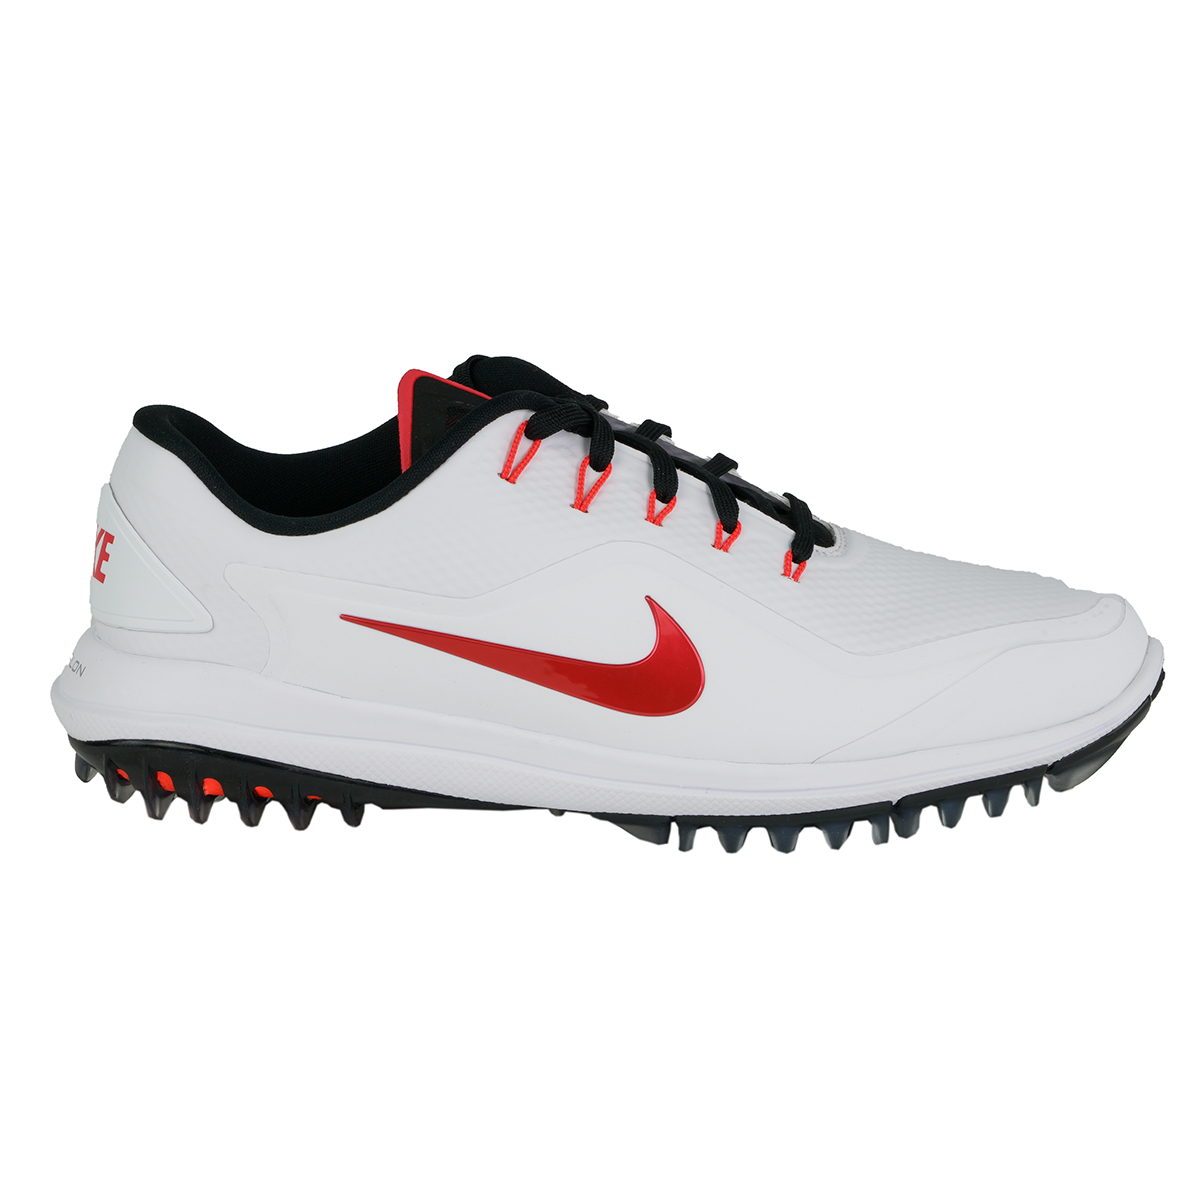 02cc74b27e1721 Details about Nike Men s Lunar Control Vapor 2 Golf Shoes White Tropical  Pink Black 11 W